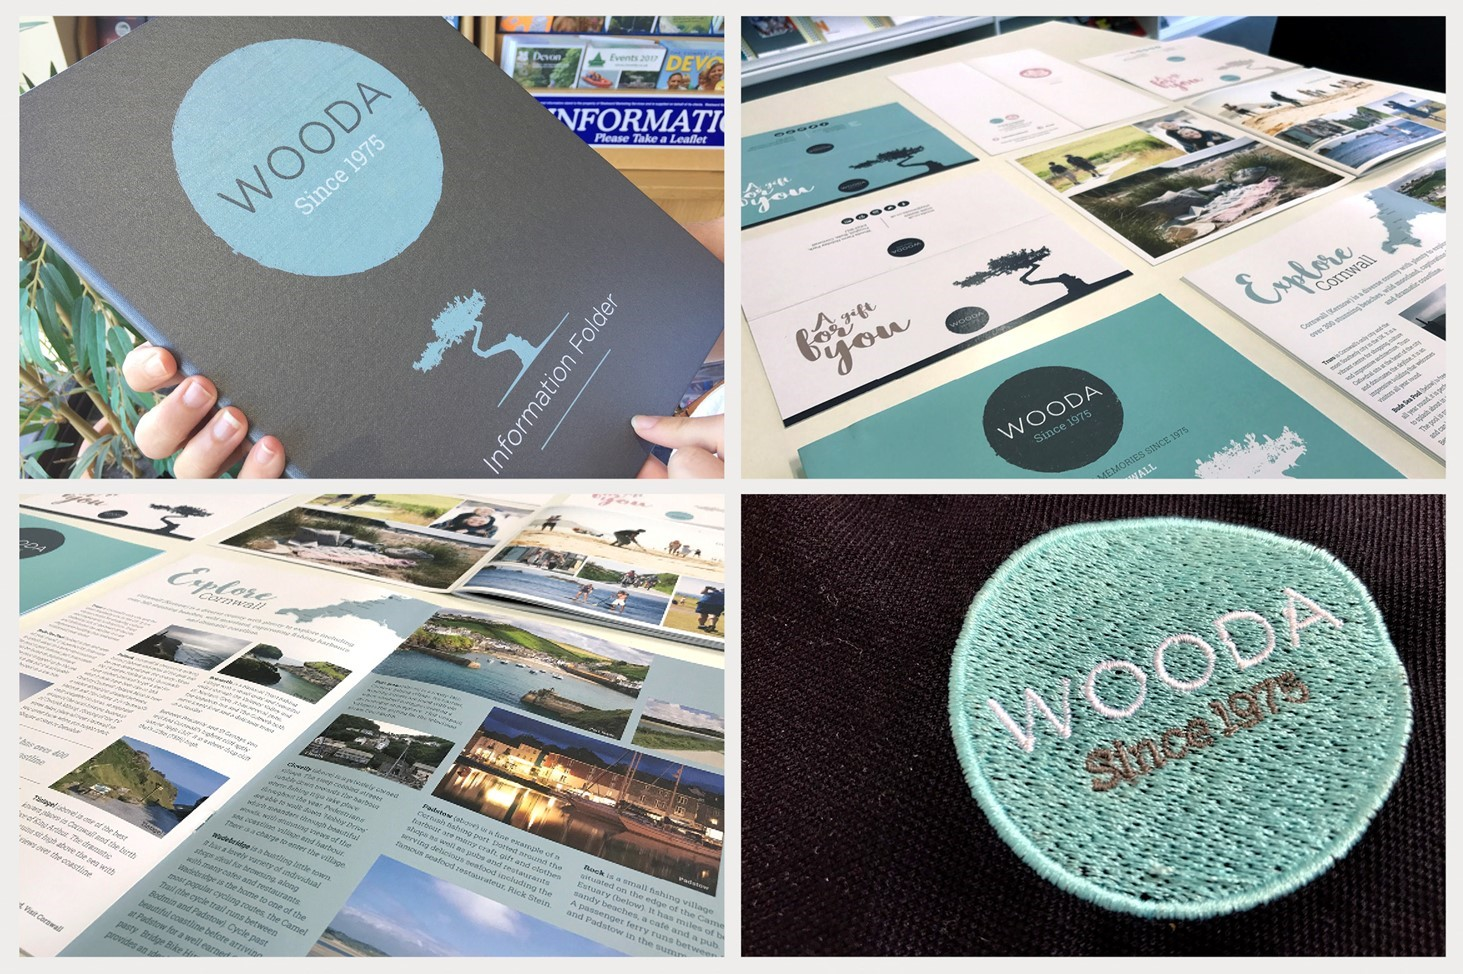 brochure, print, signage, logo, wooda farm, design79